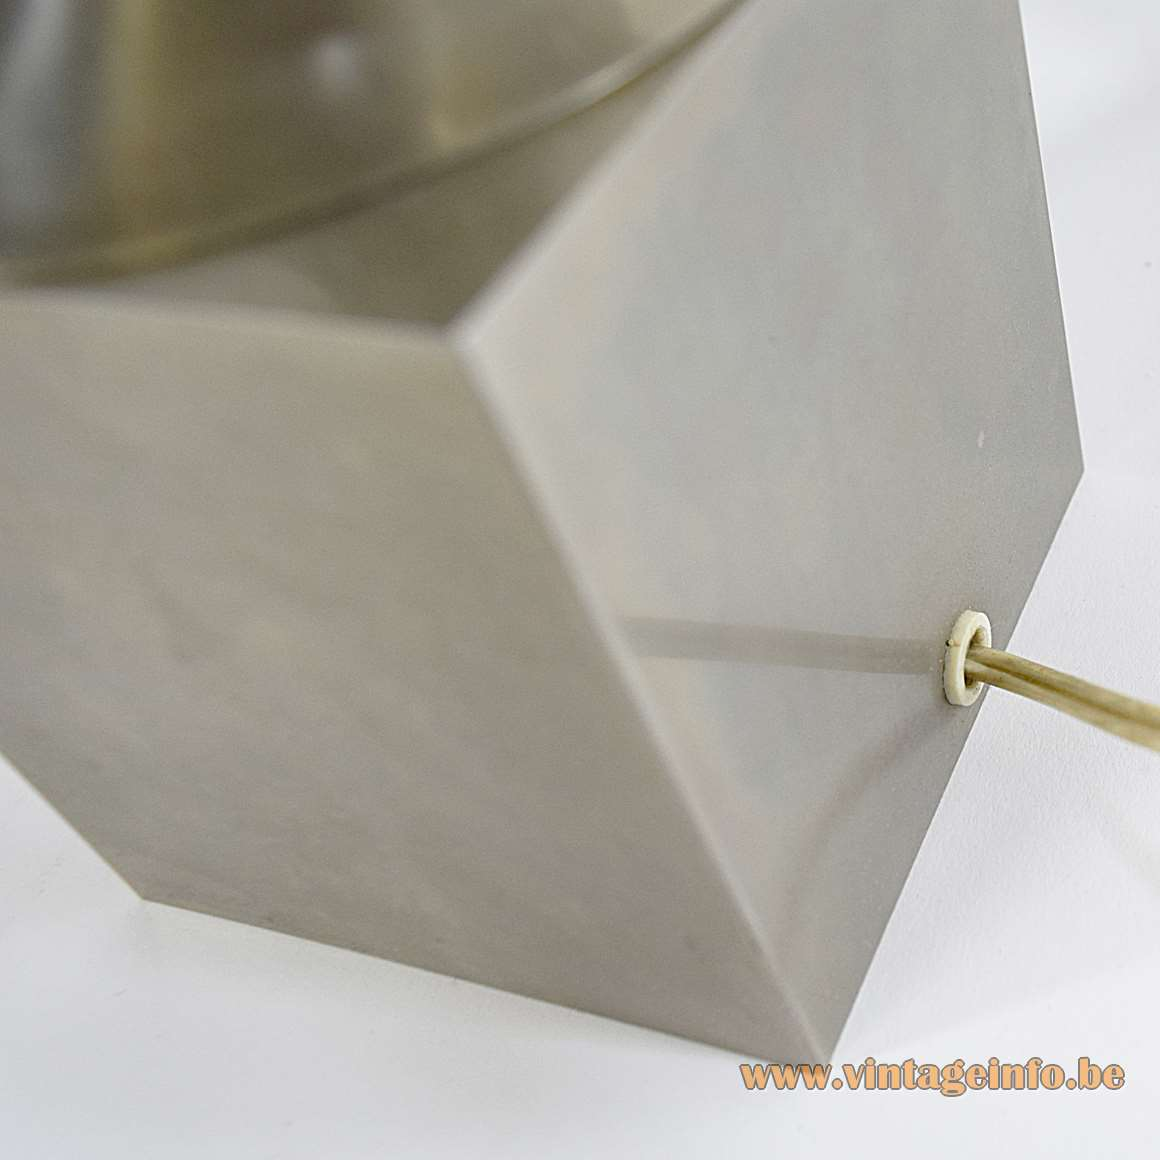 Nickel-plated Modernist Table Lamp geometric square base Saturn round lampshade 1960s 1970s MCM